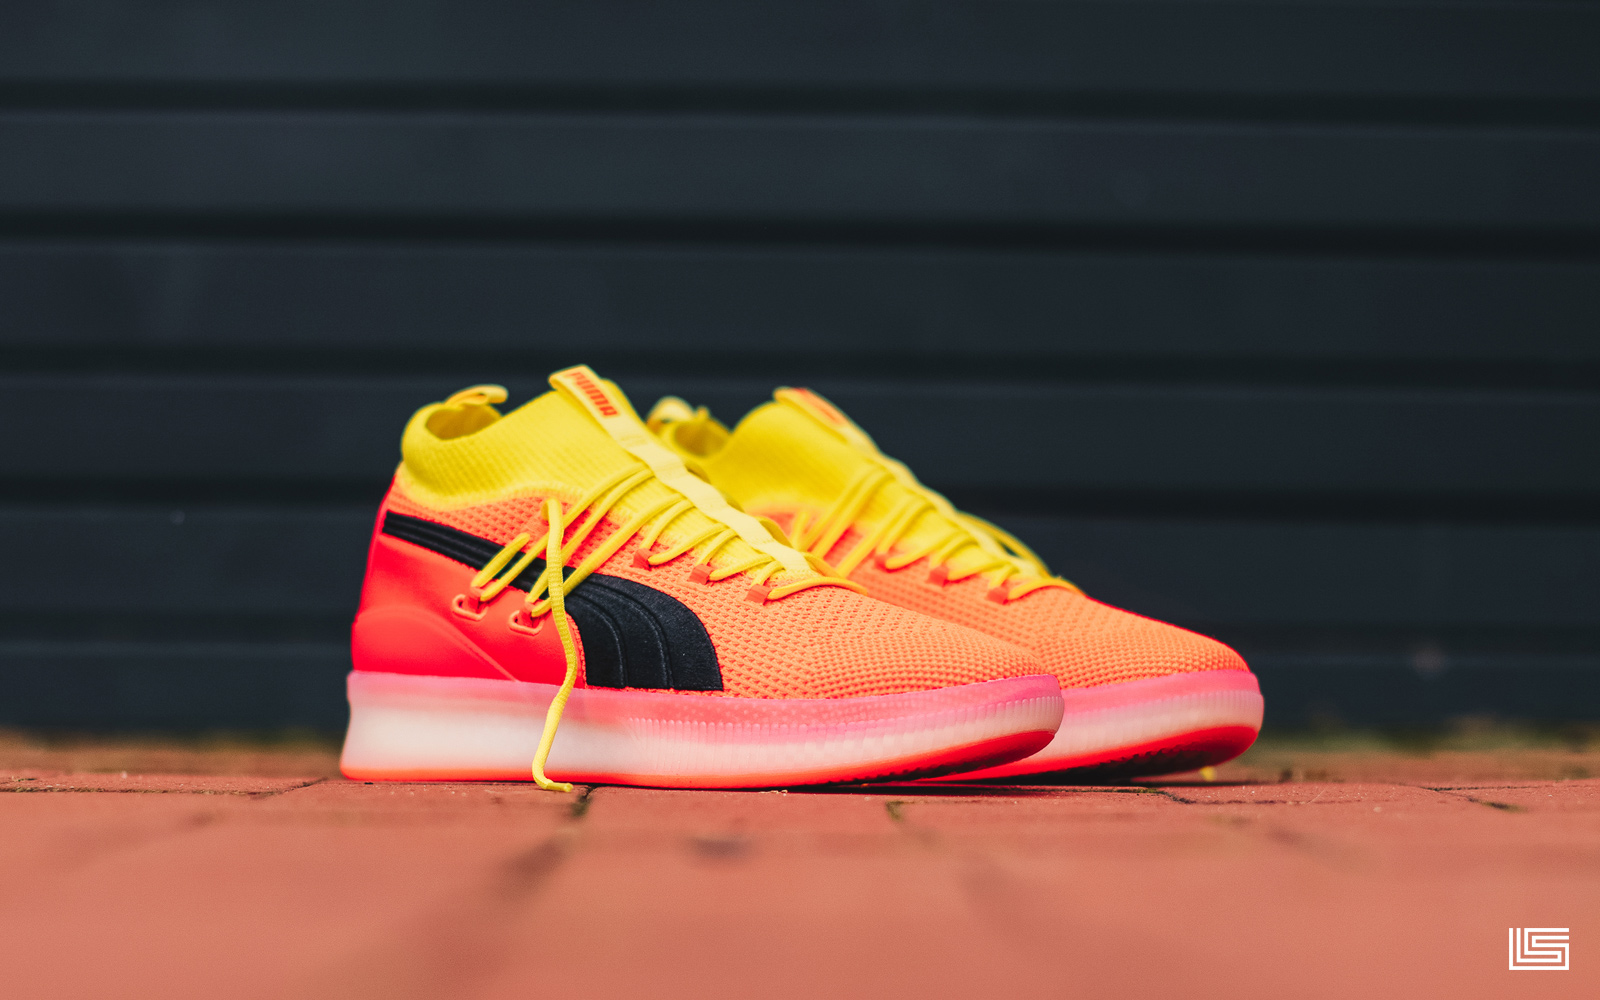 los angeles 517e7 ab7d9 UNBOXED Episode 34: PUMA Disrupt On-Foot Performance Review ...